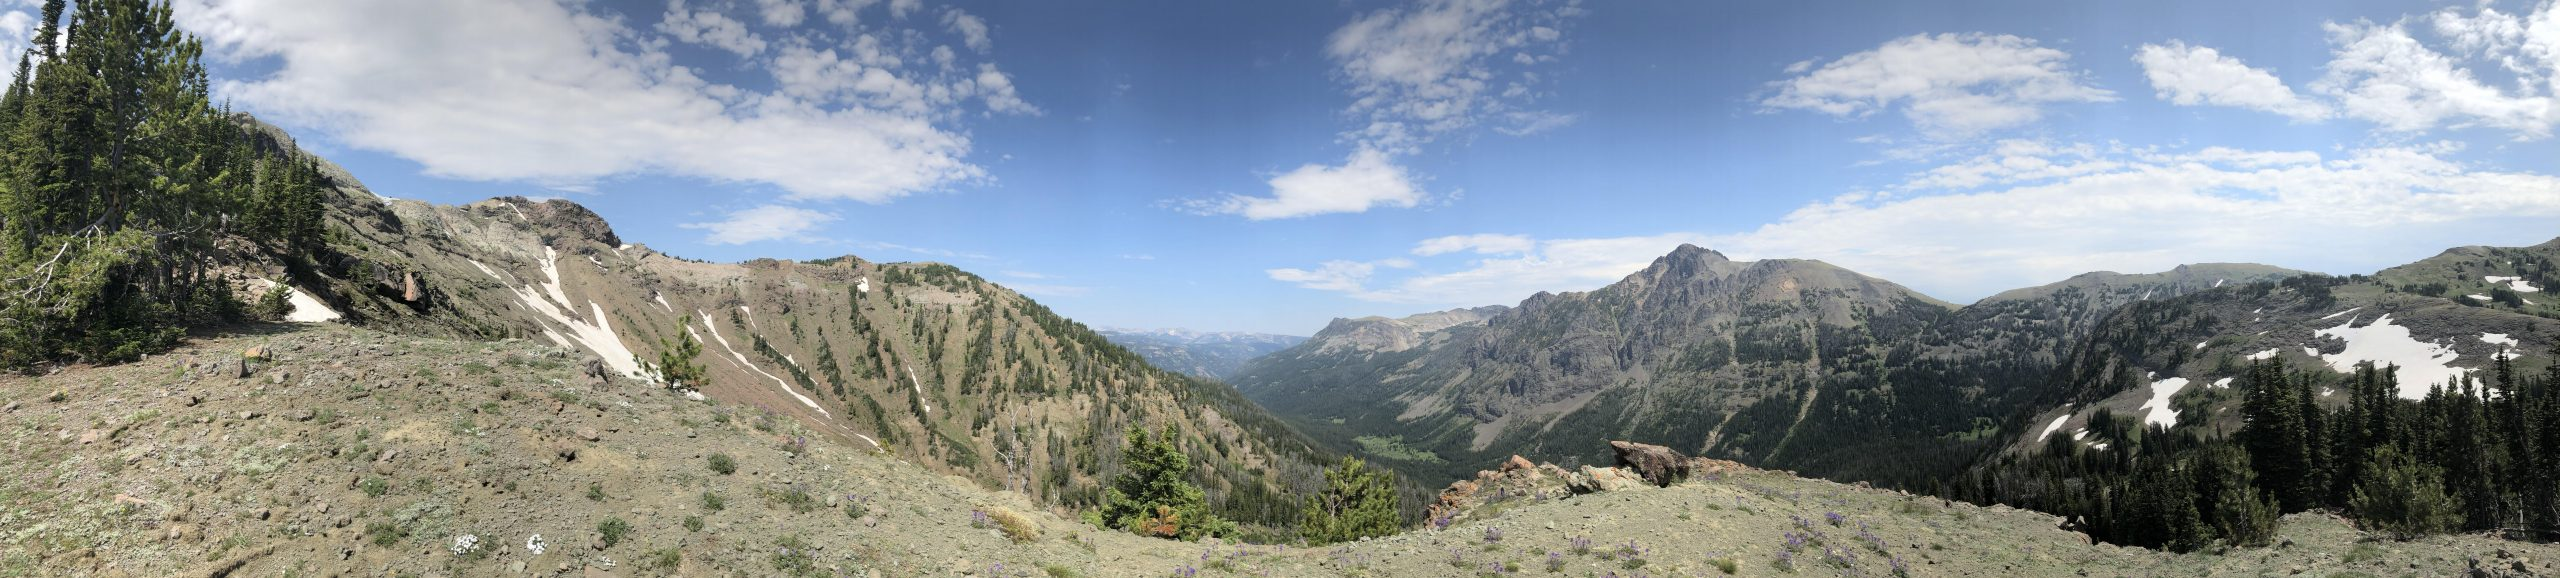 Mountain top view Custer Gallatin National forest [ x4000] don't know exact resolution [OC]